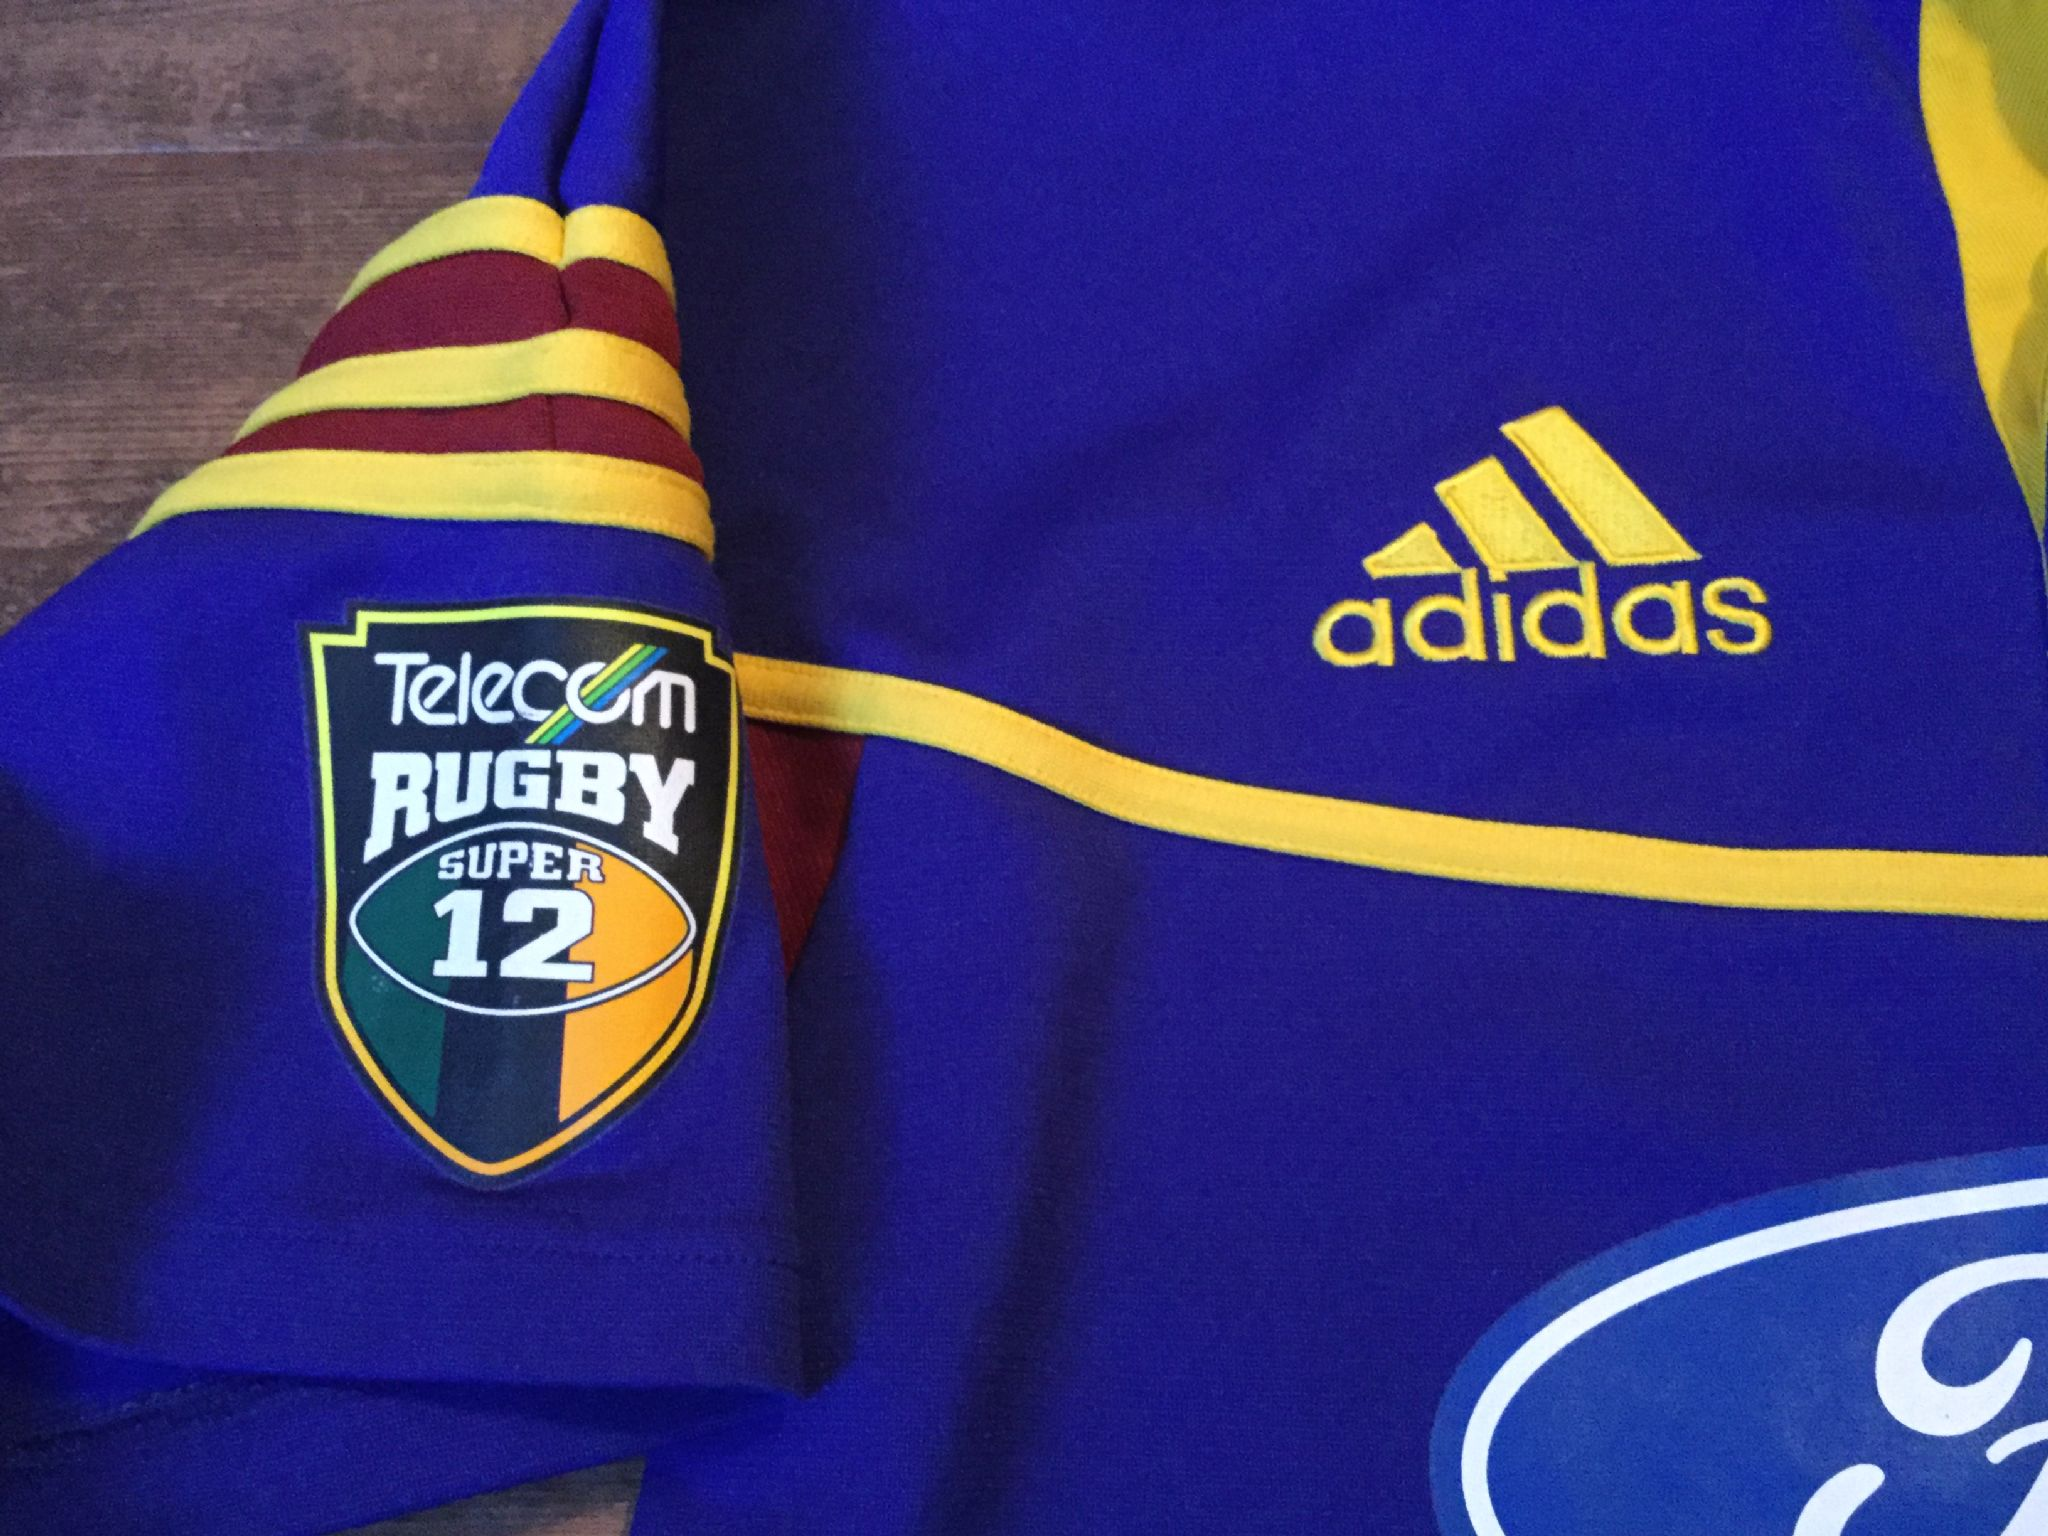 Classic Rugby Shirts 2001 Highlanders Vintage Retro Old Jerseys